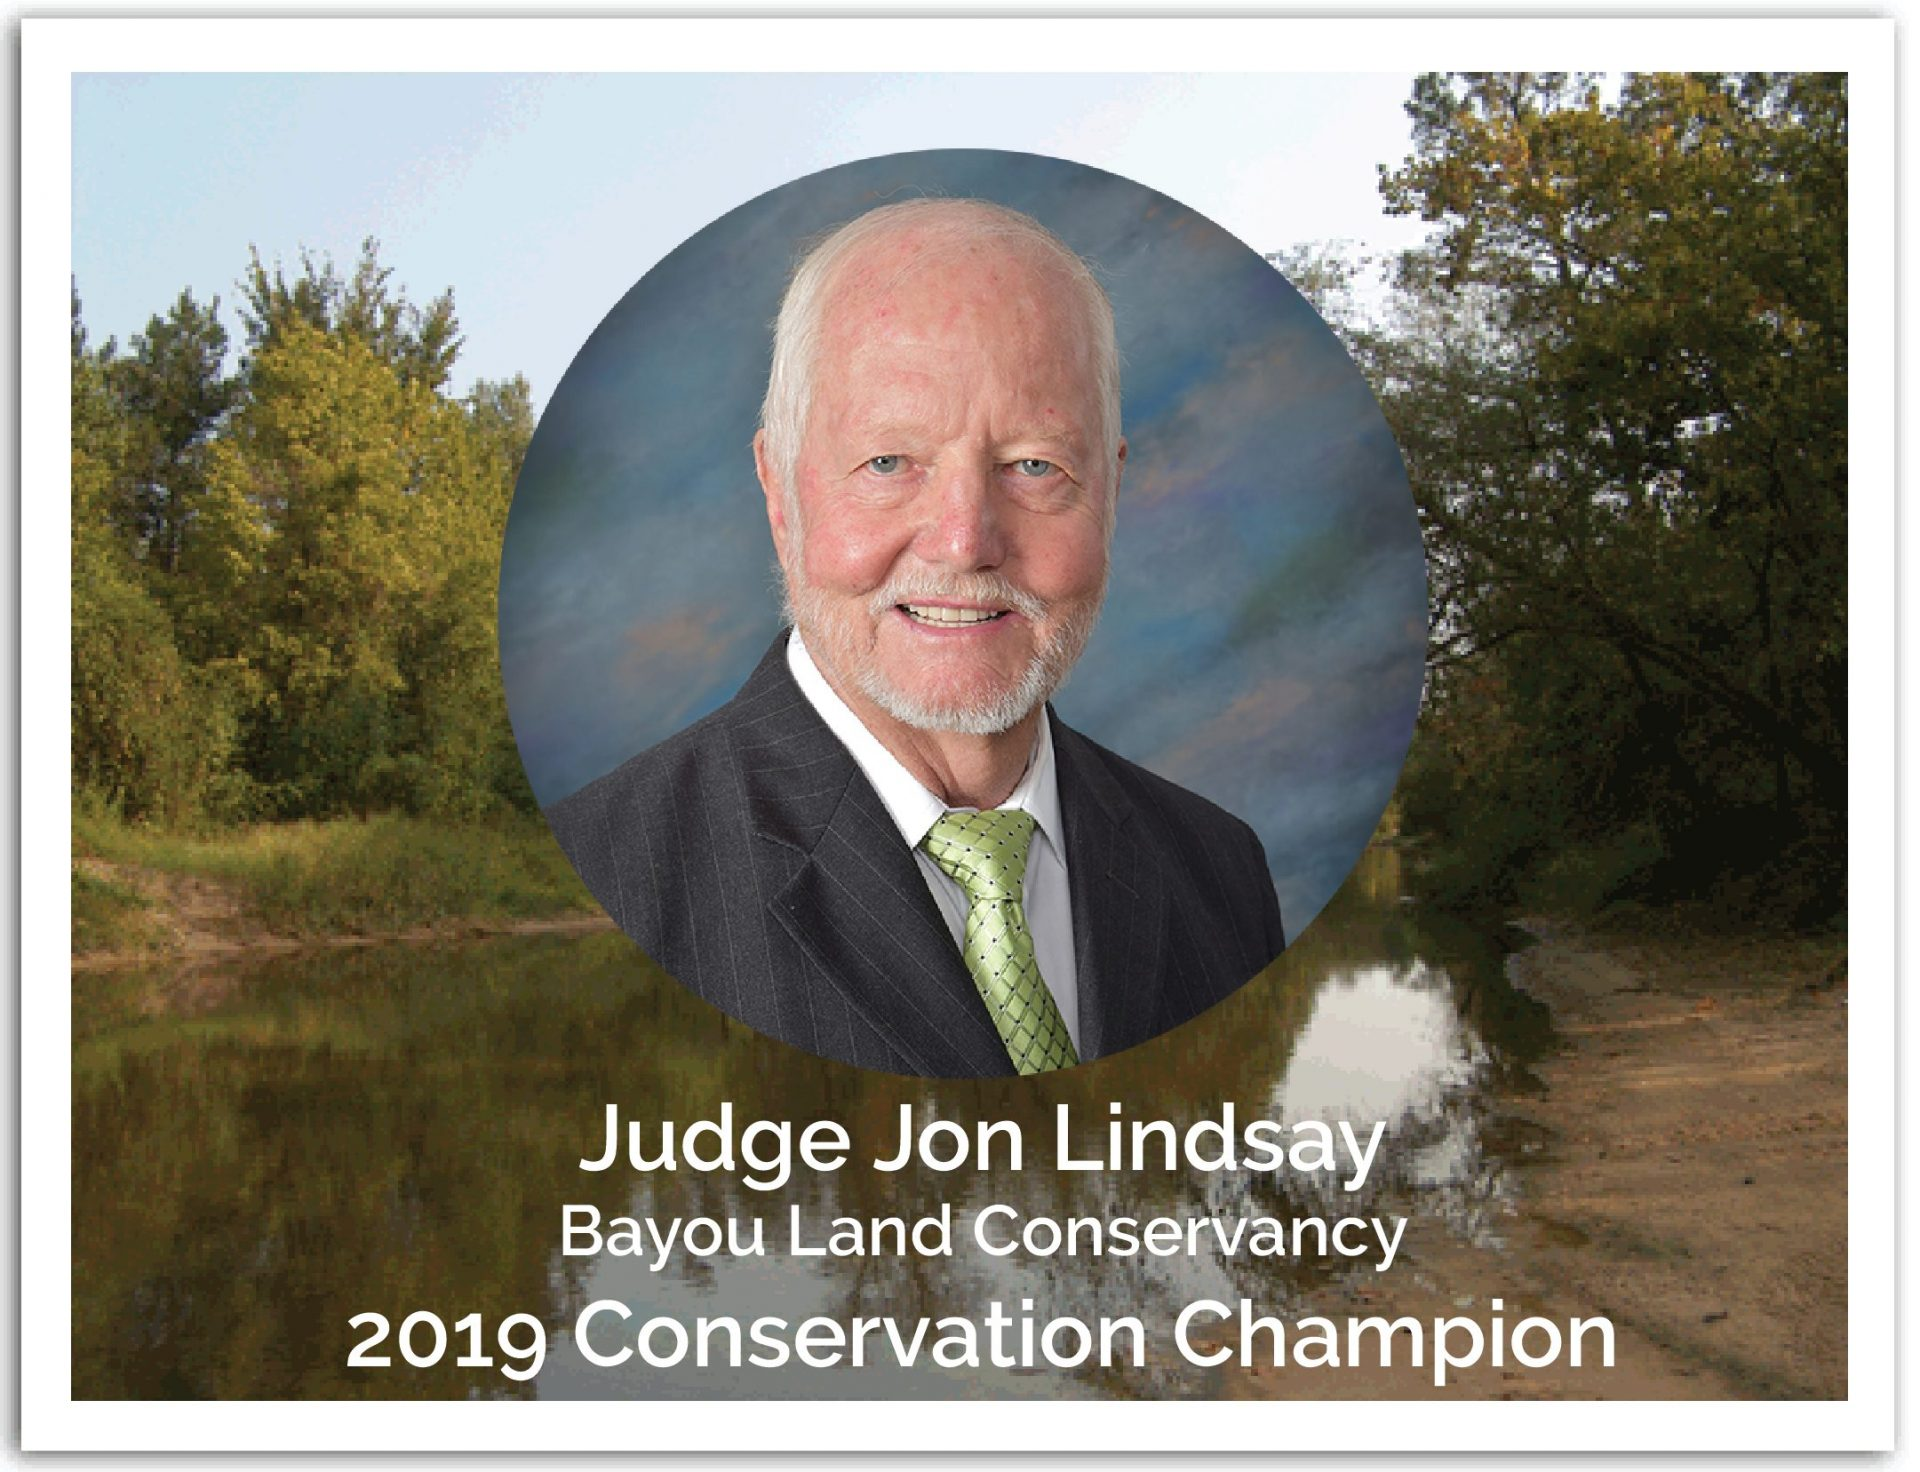 Judge Lindsay is recognized as Bayou Land Conservancy's 2019 Conservation Champion